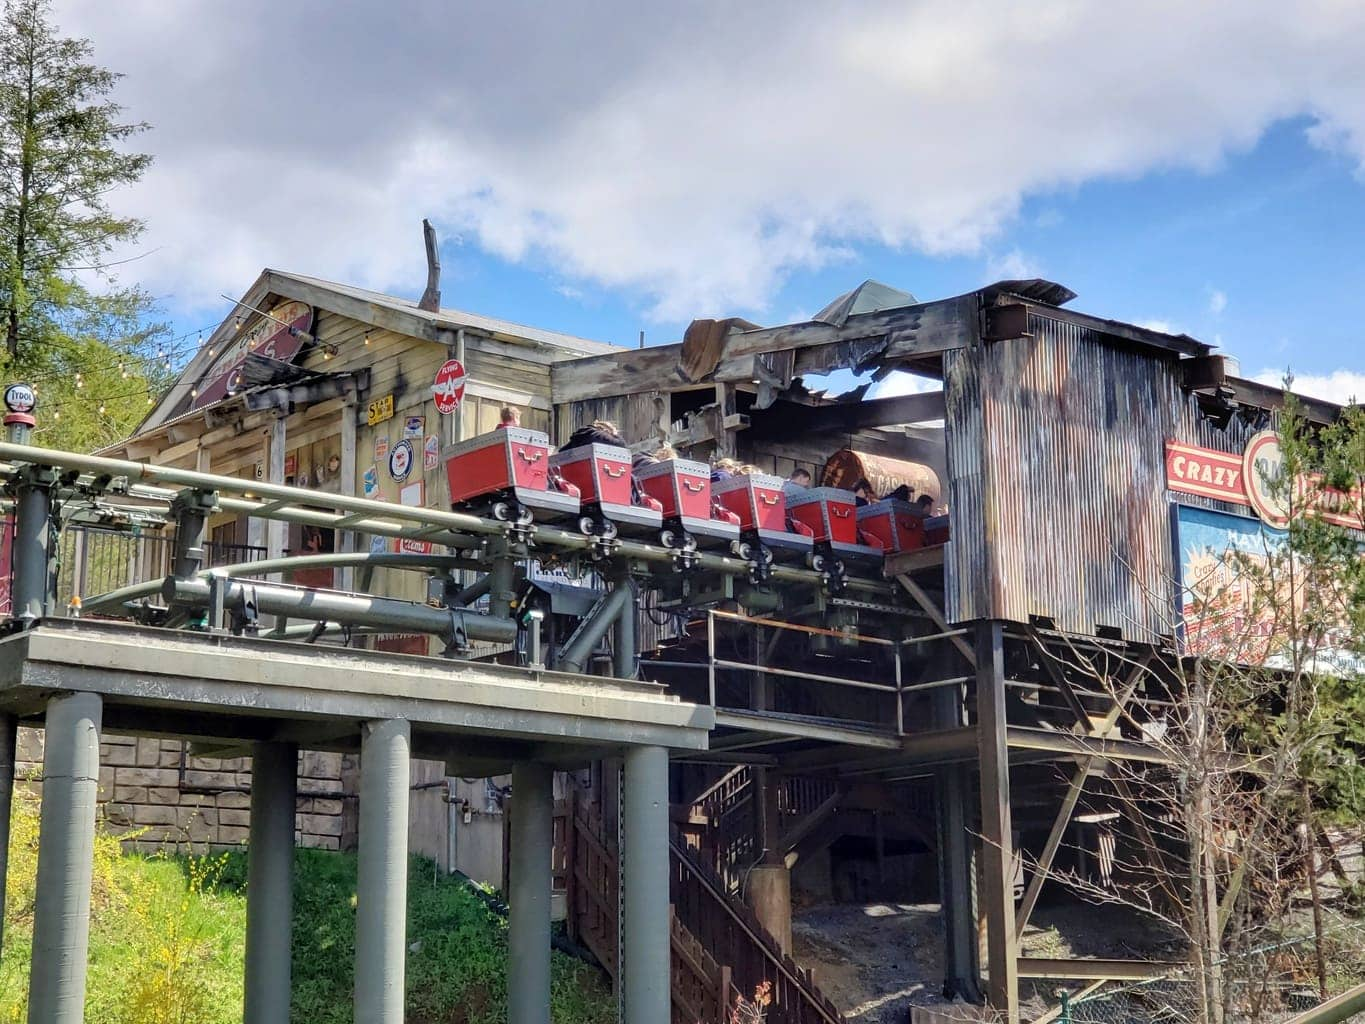 10 Helpful Tips When Visiting Dollywood For Your First Time